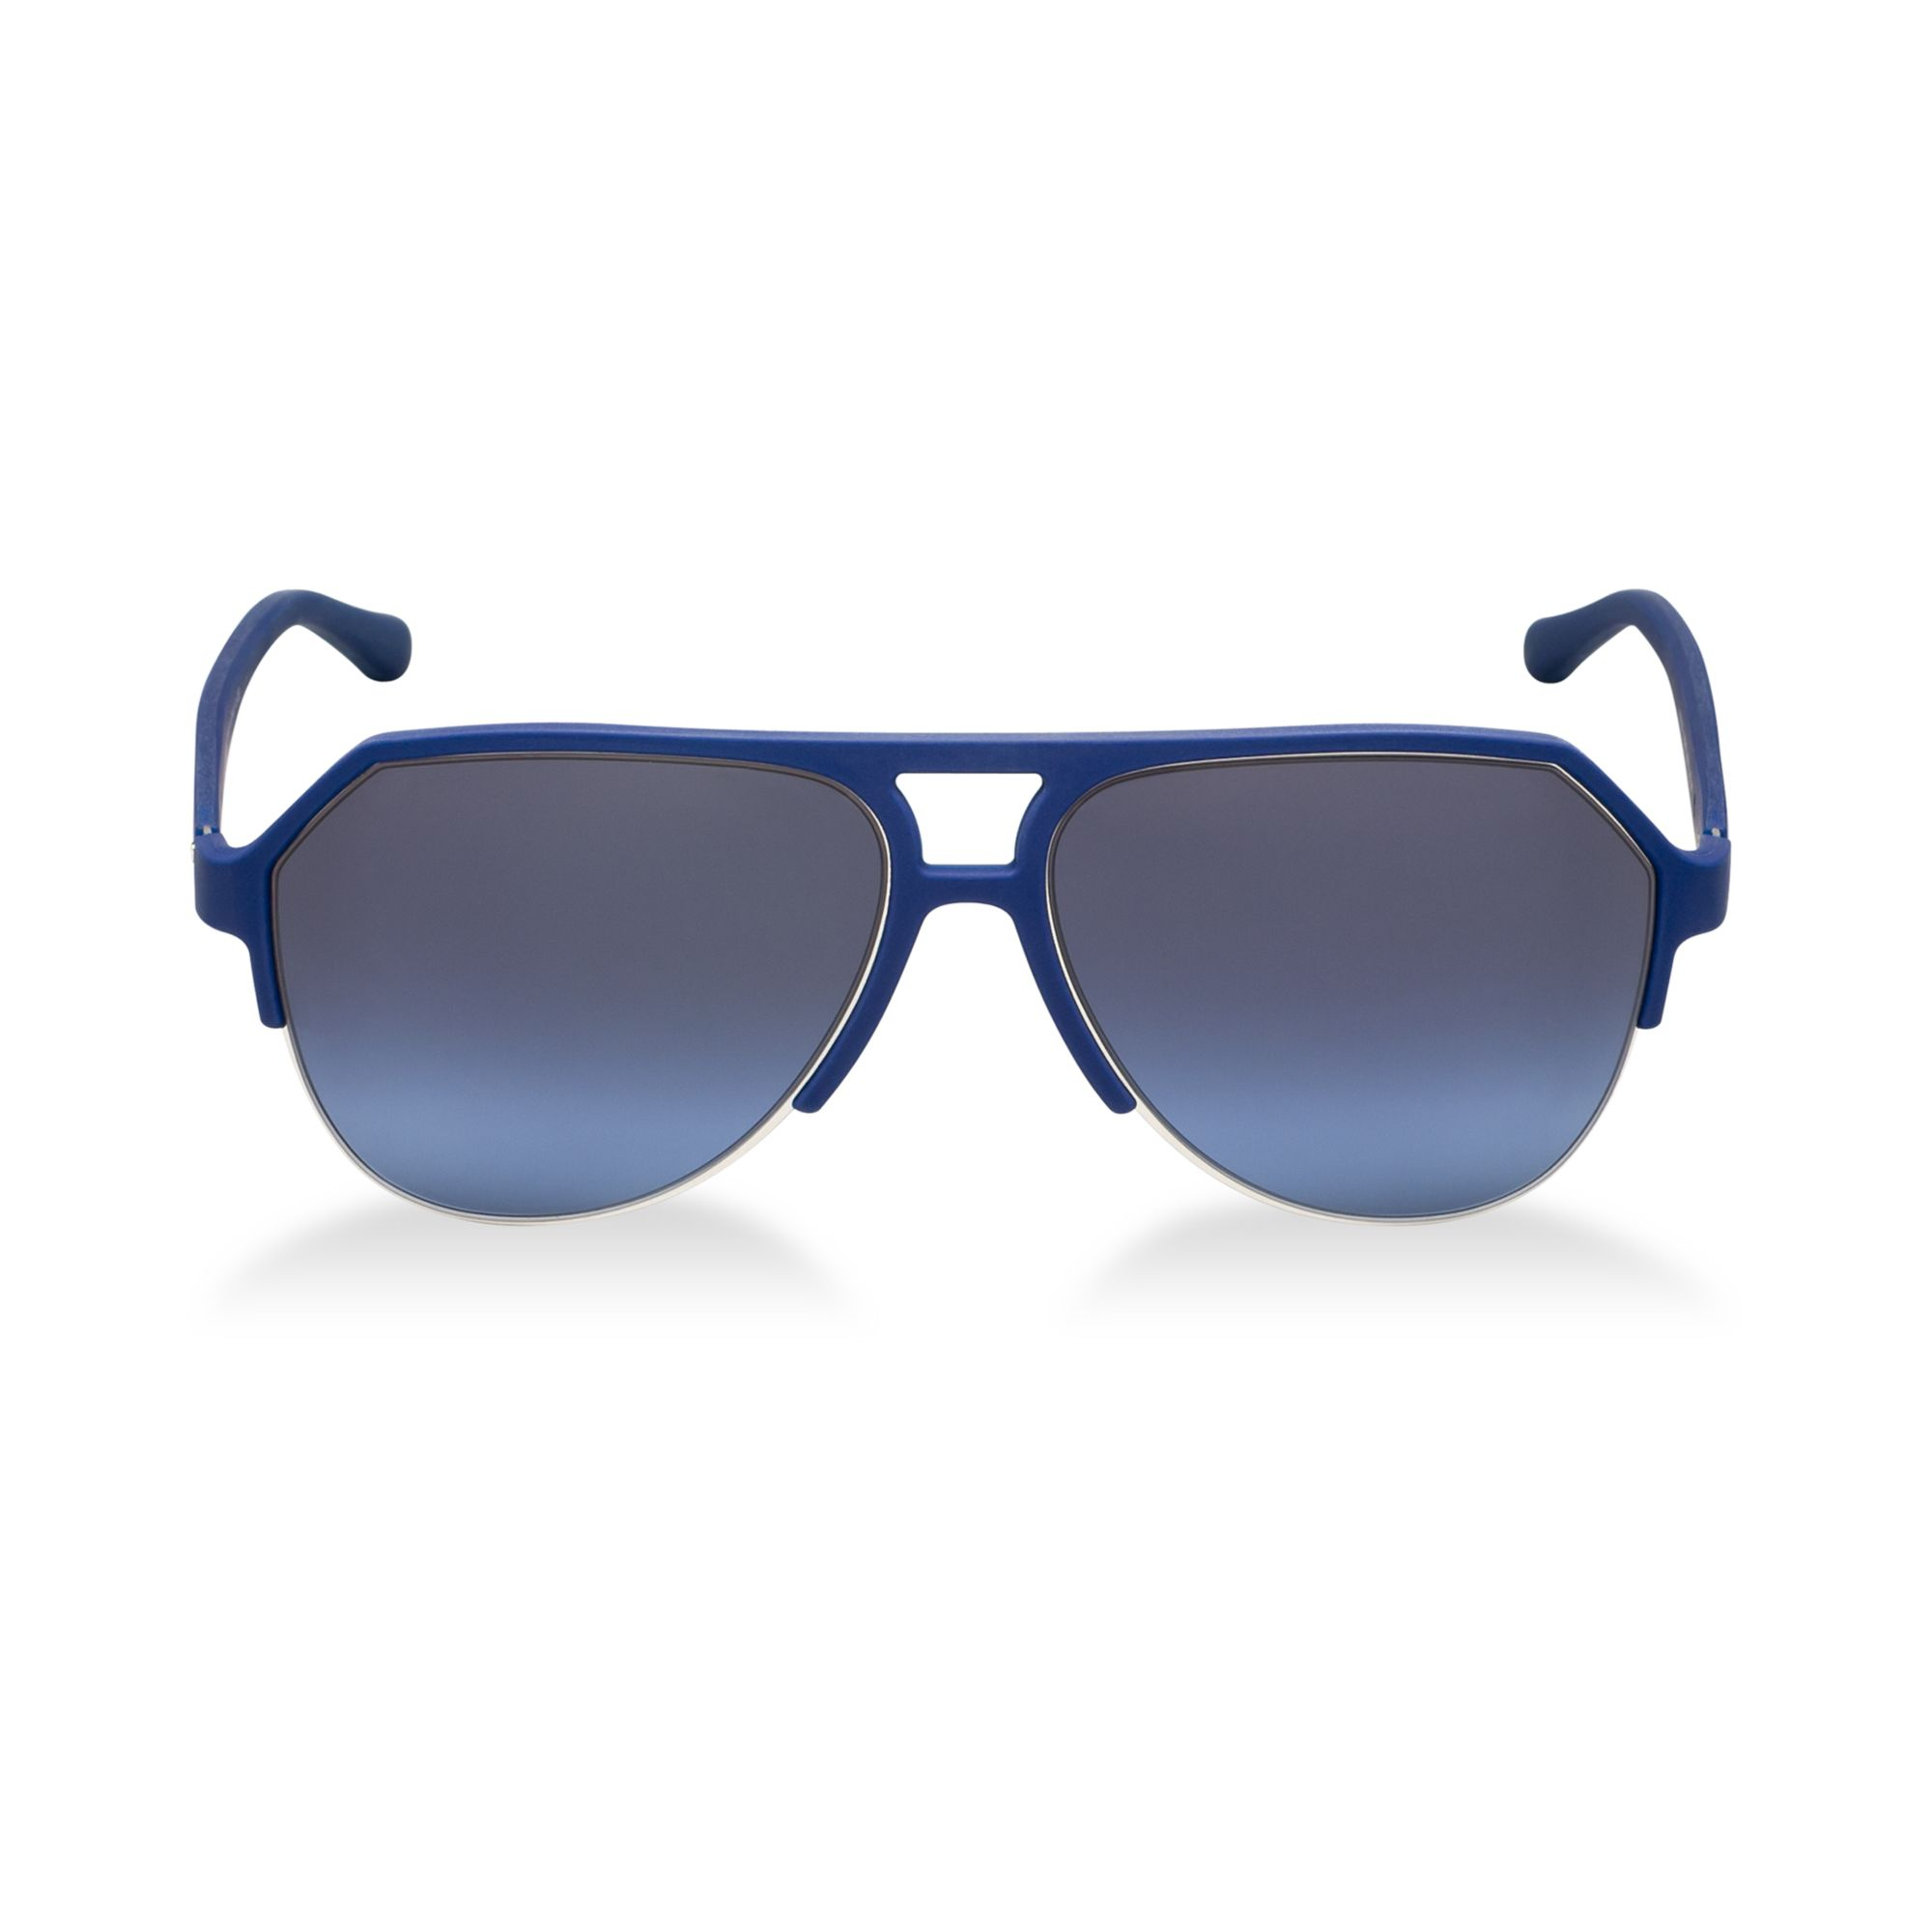 43b326871a609 Lyst Sunglasses Men For Gabbana In amp  Dolce Blue FrvFp